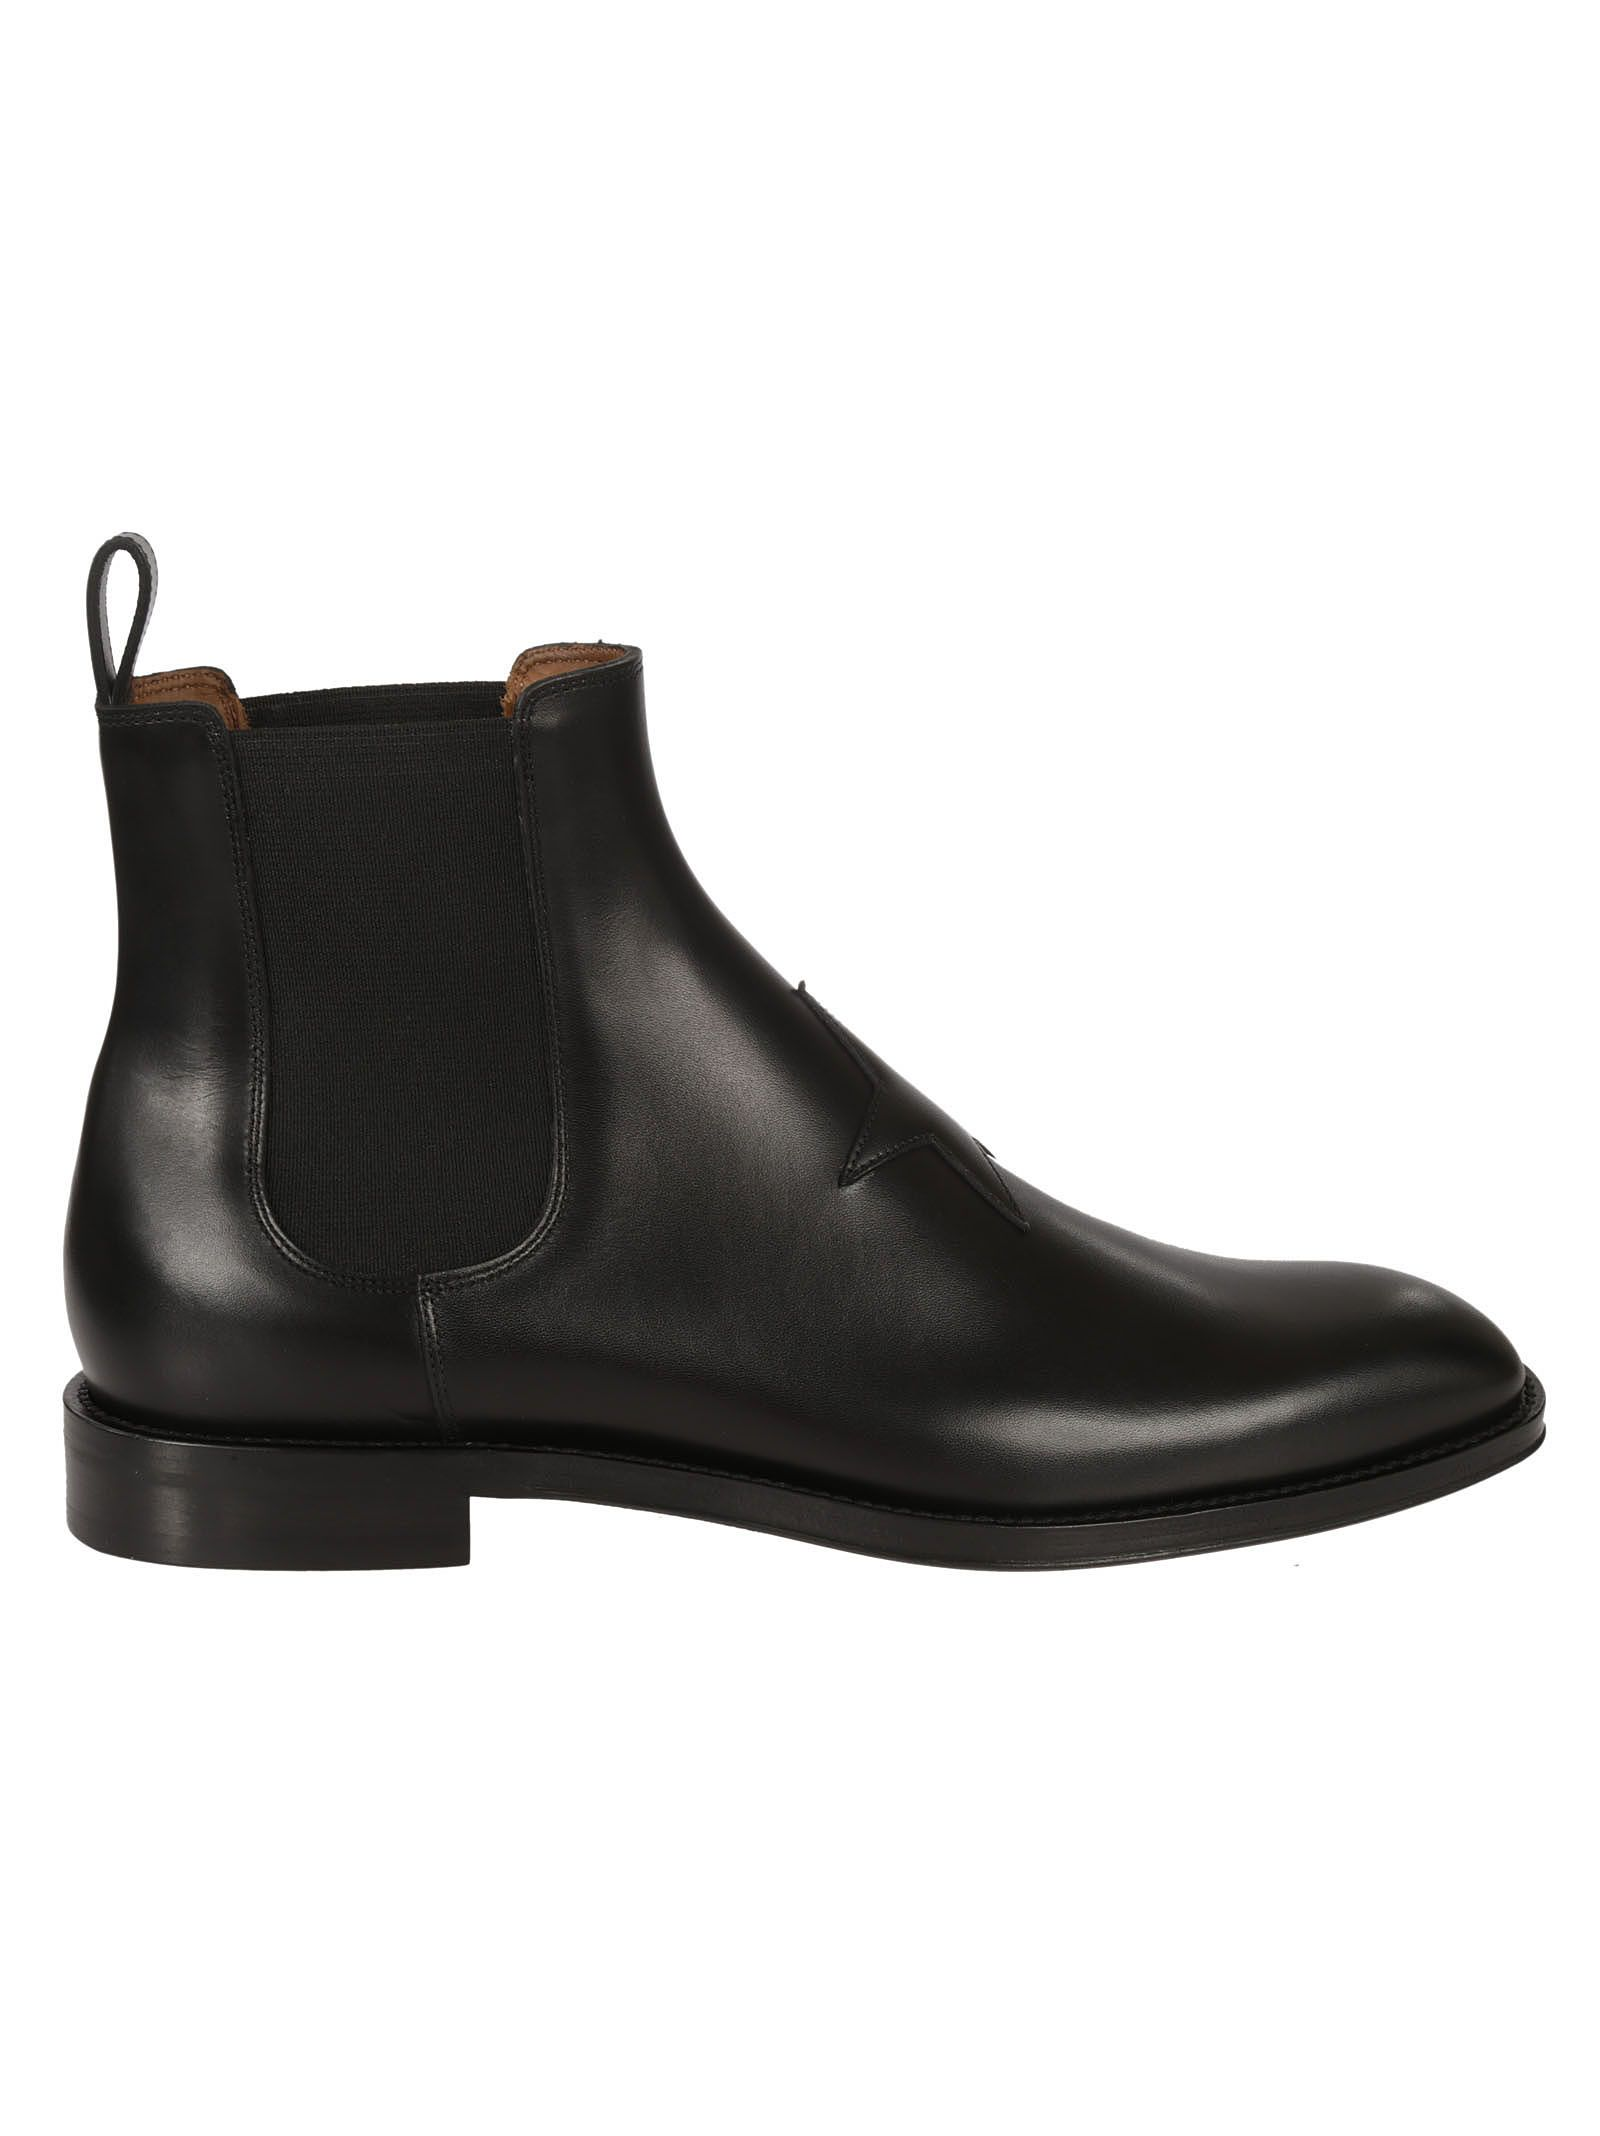 Givenchy Star Patch Chelsea Ankle Boots